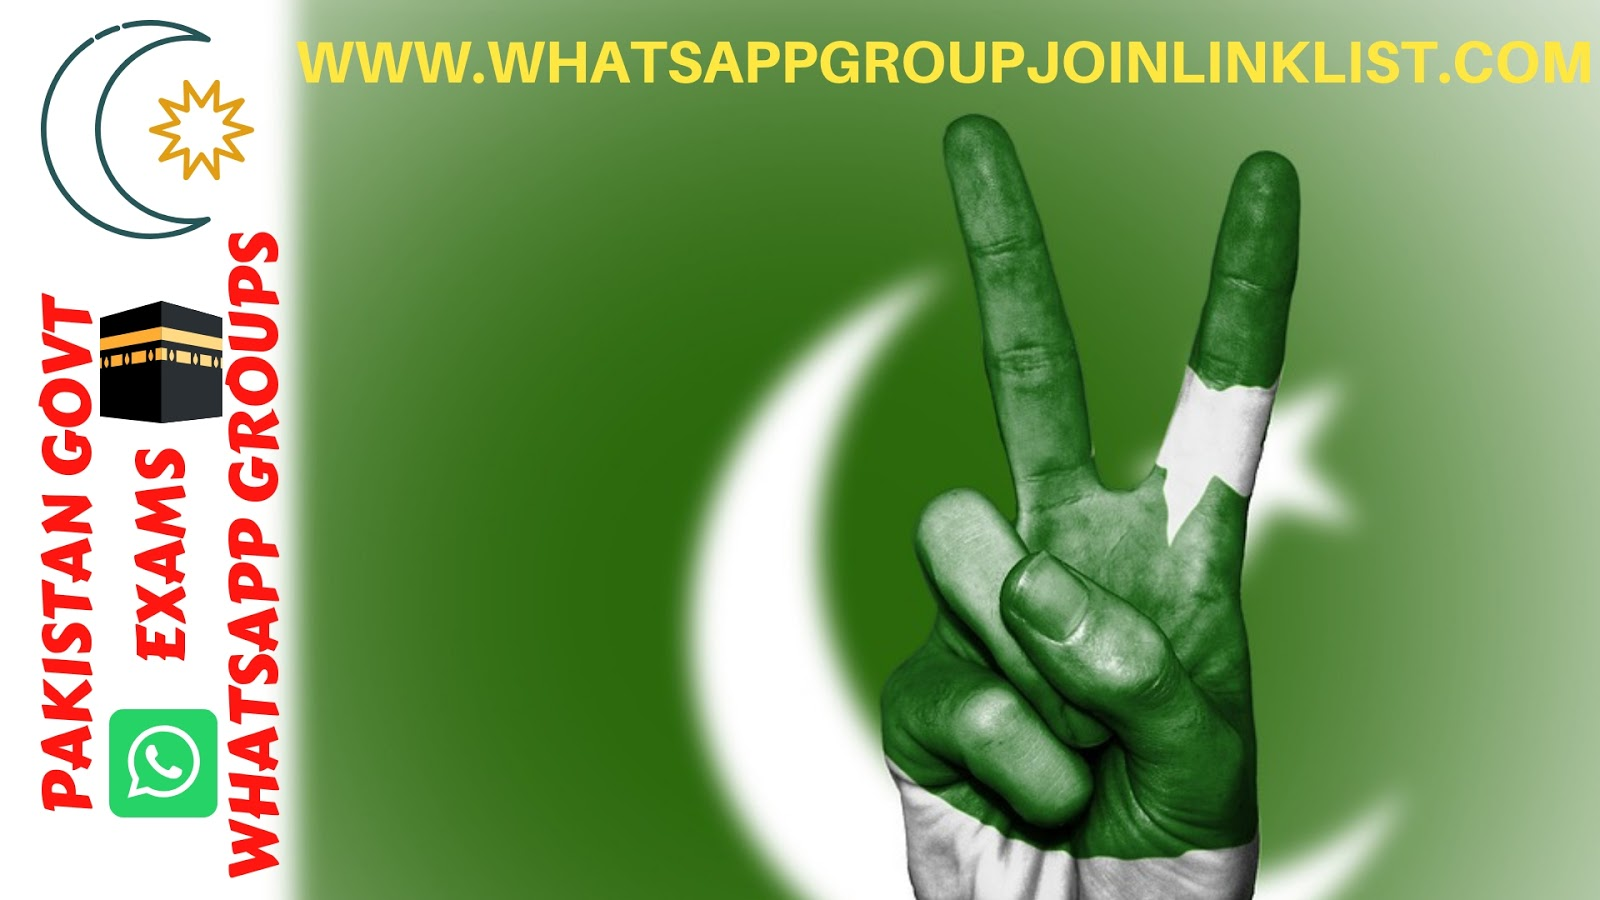 Pakistan Government Exams WhatsApp Group Join Link List